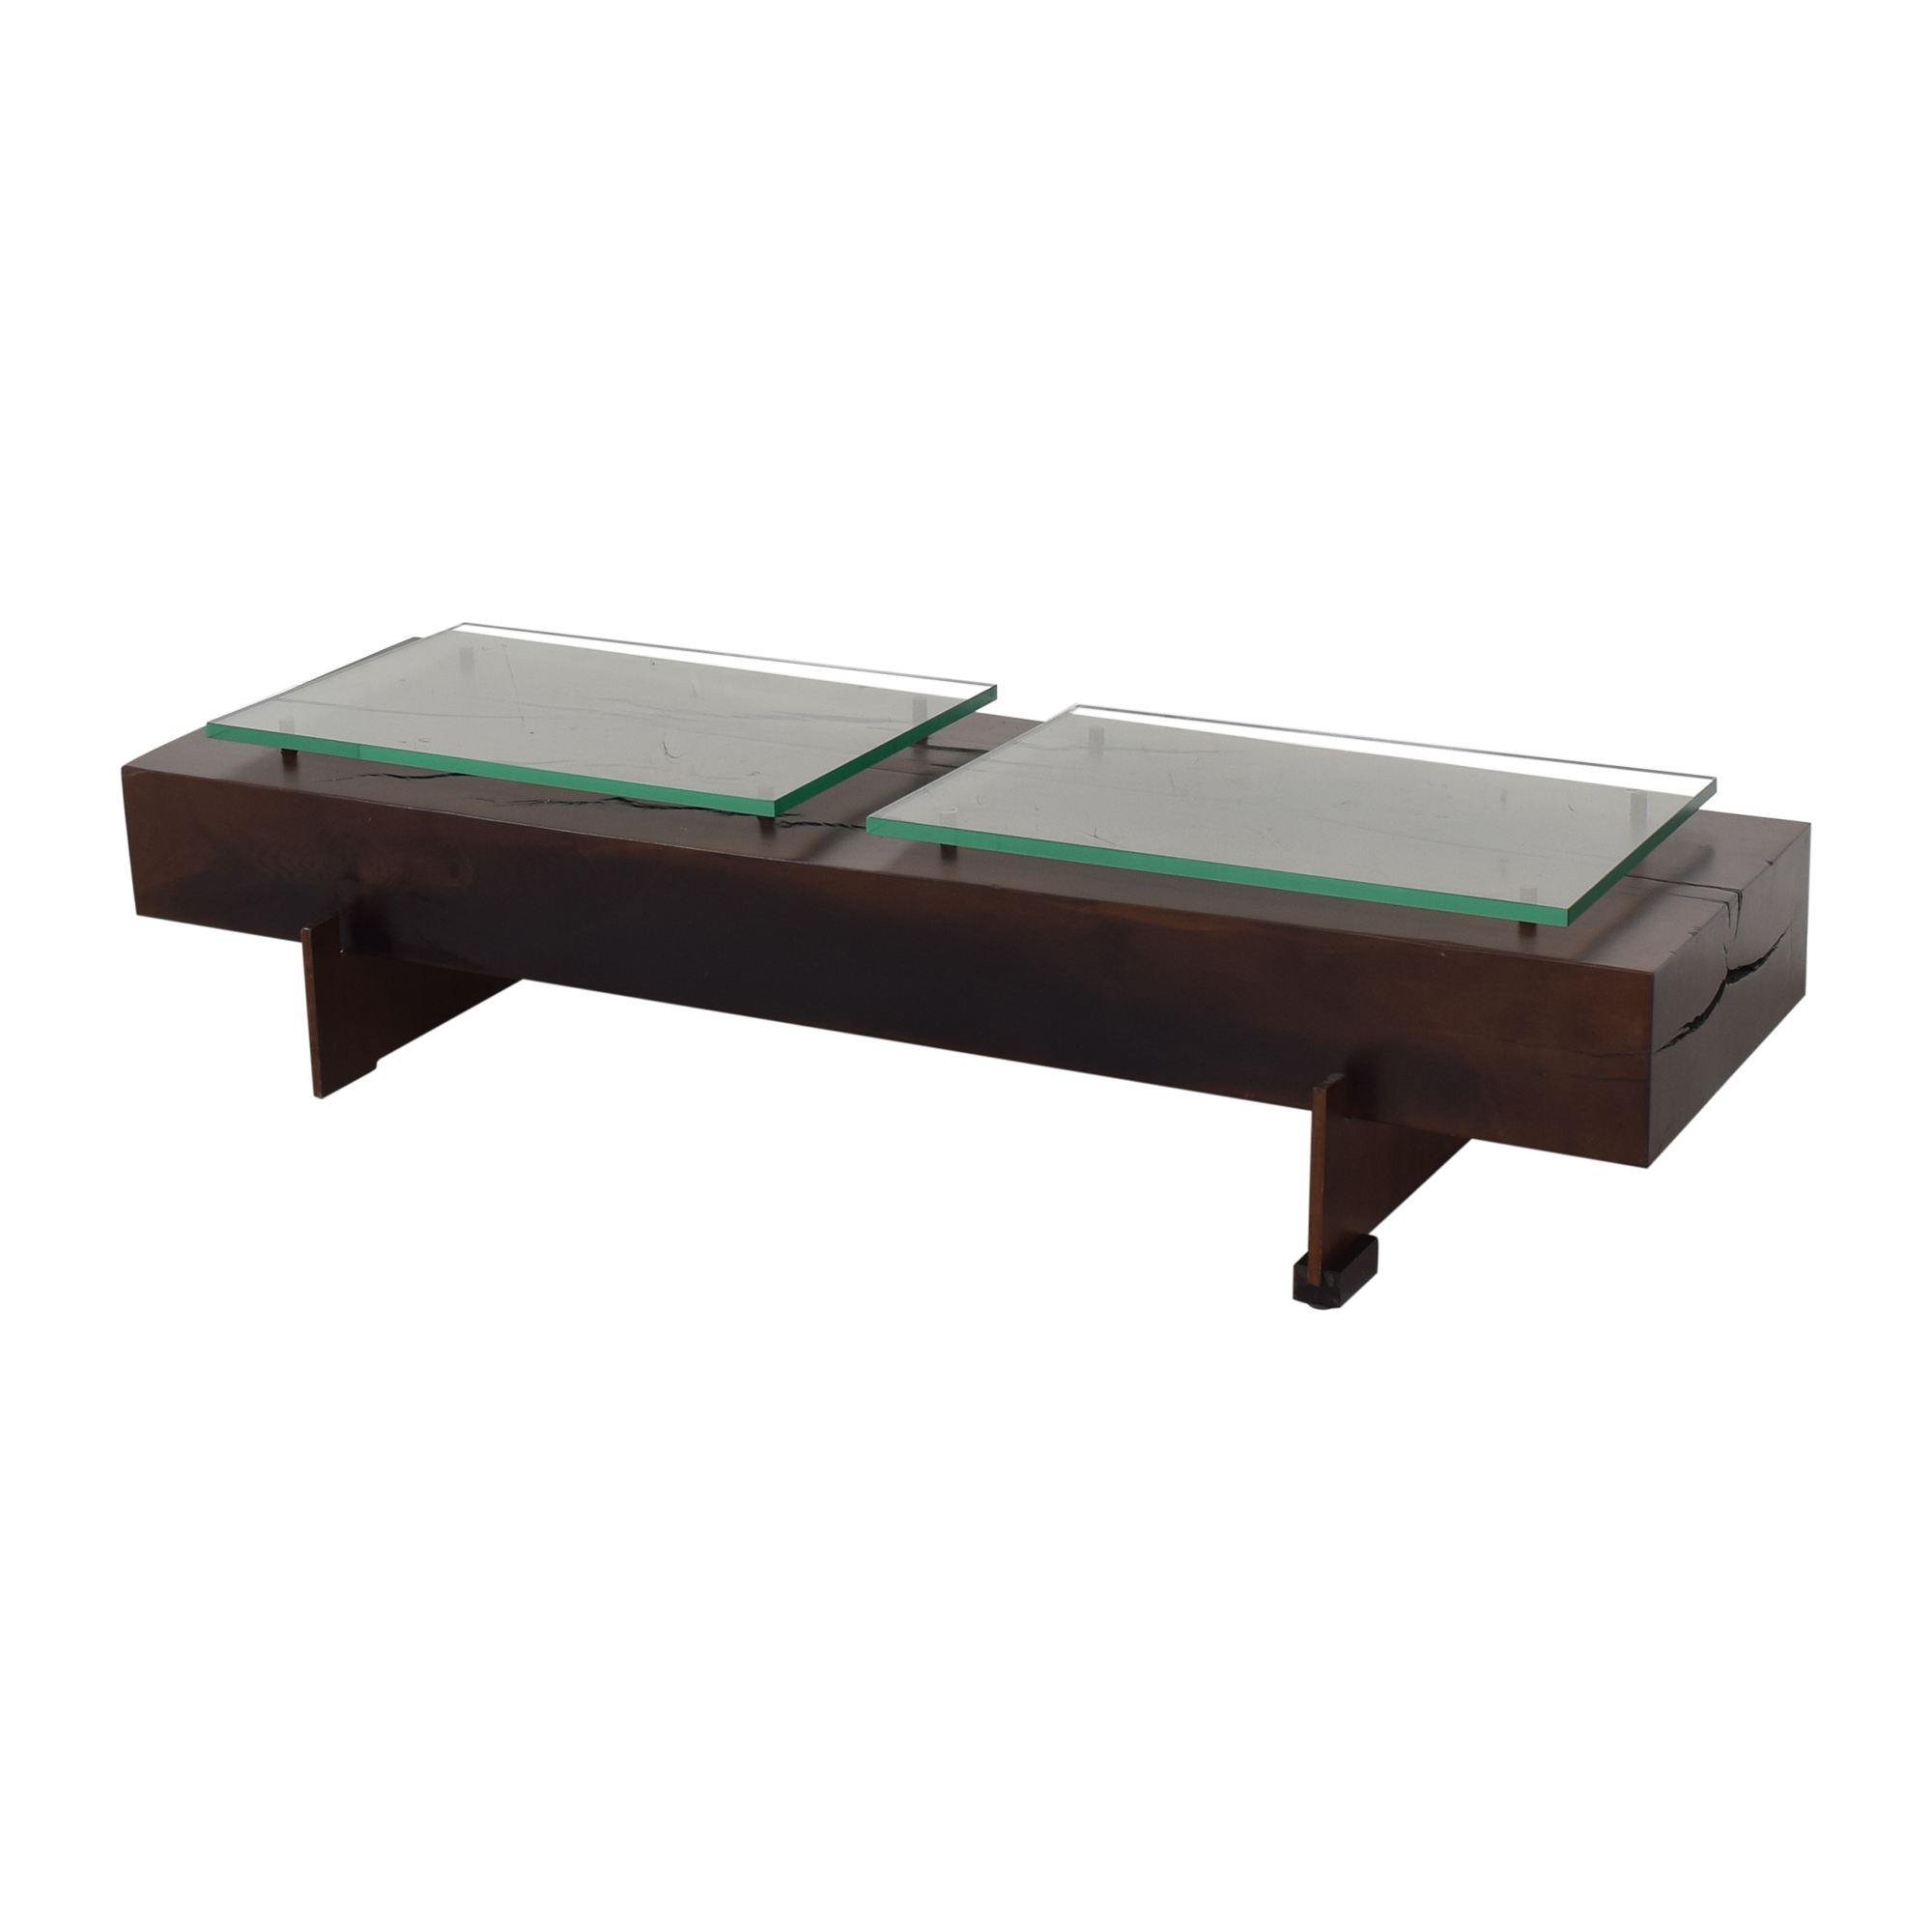 Moura Starr Iguatemi Coffee Table With Glass nj